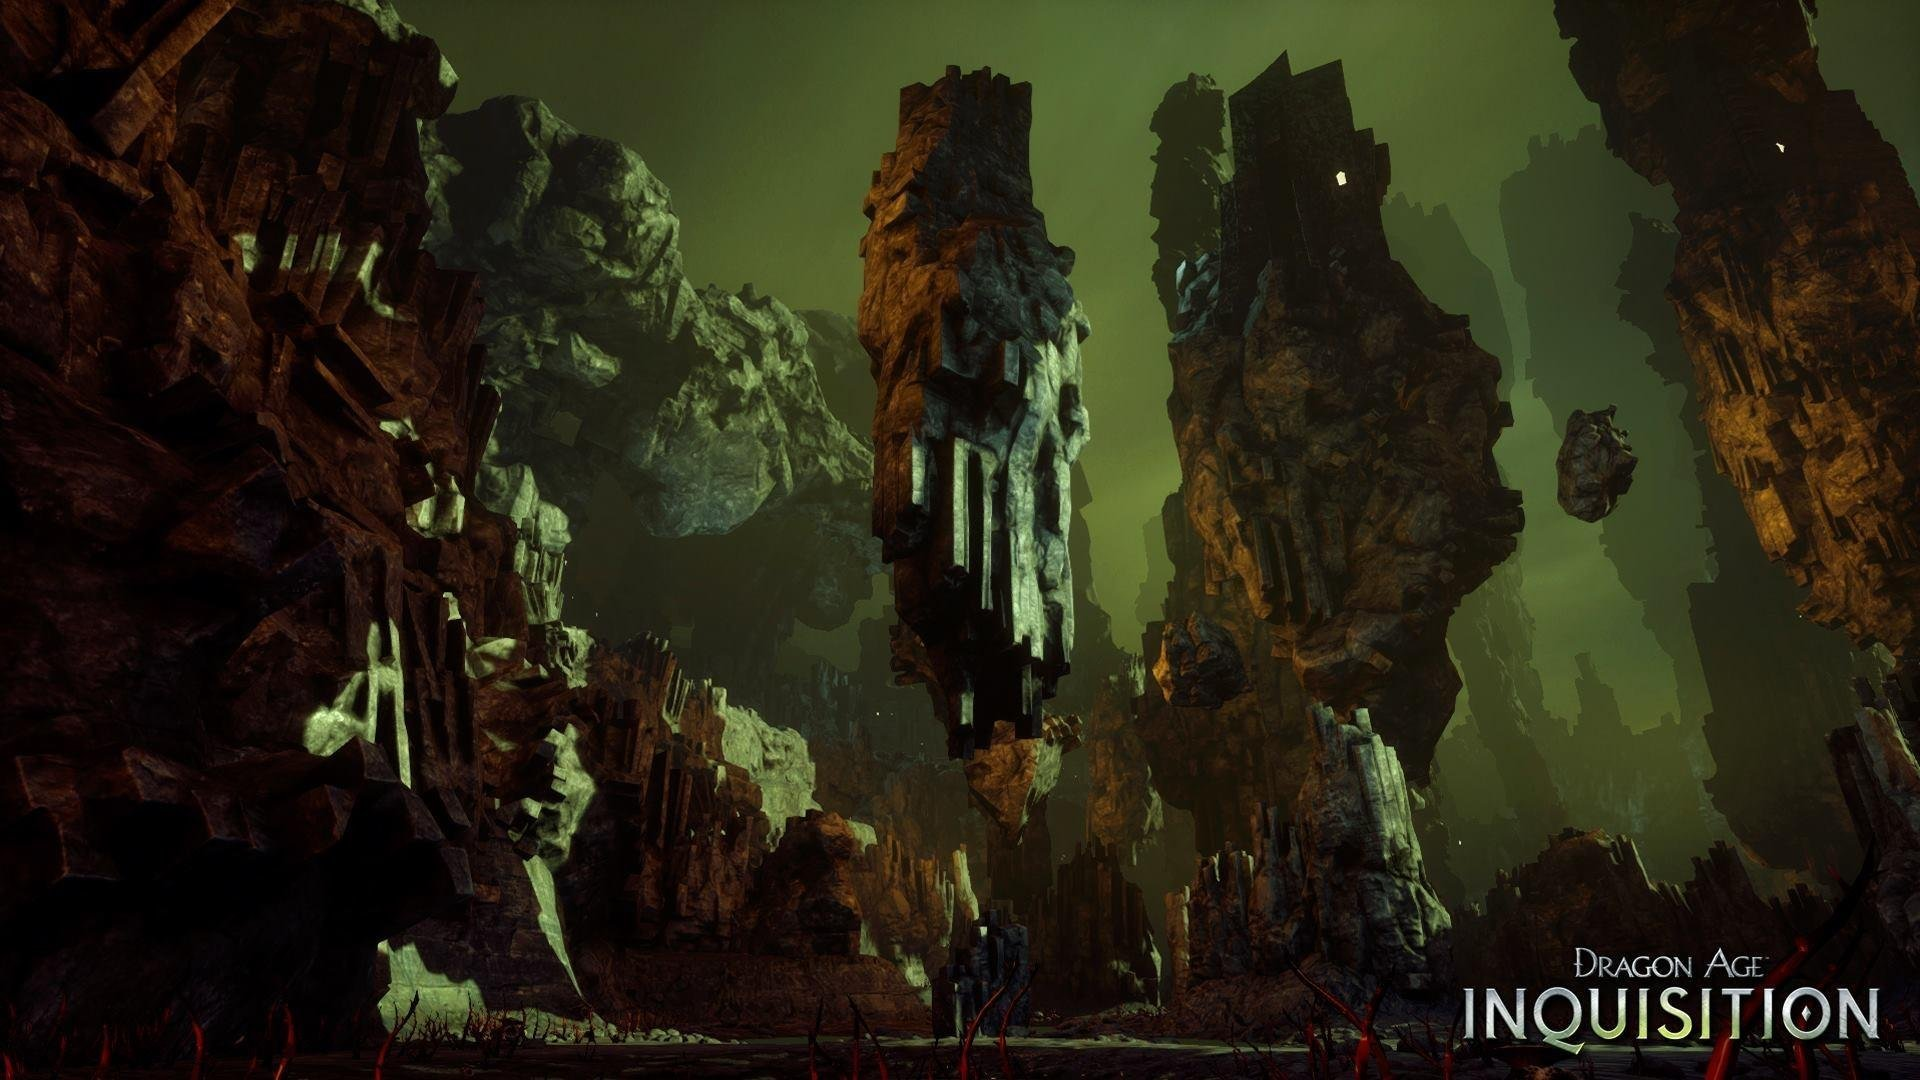 Best Dragon Age Inquisition Wallpaper Id204705 For High